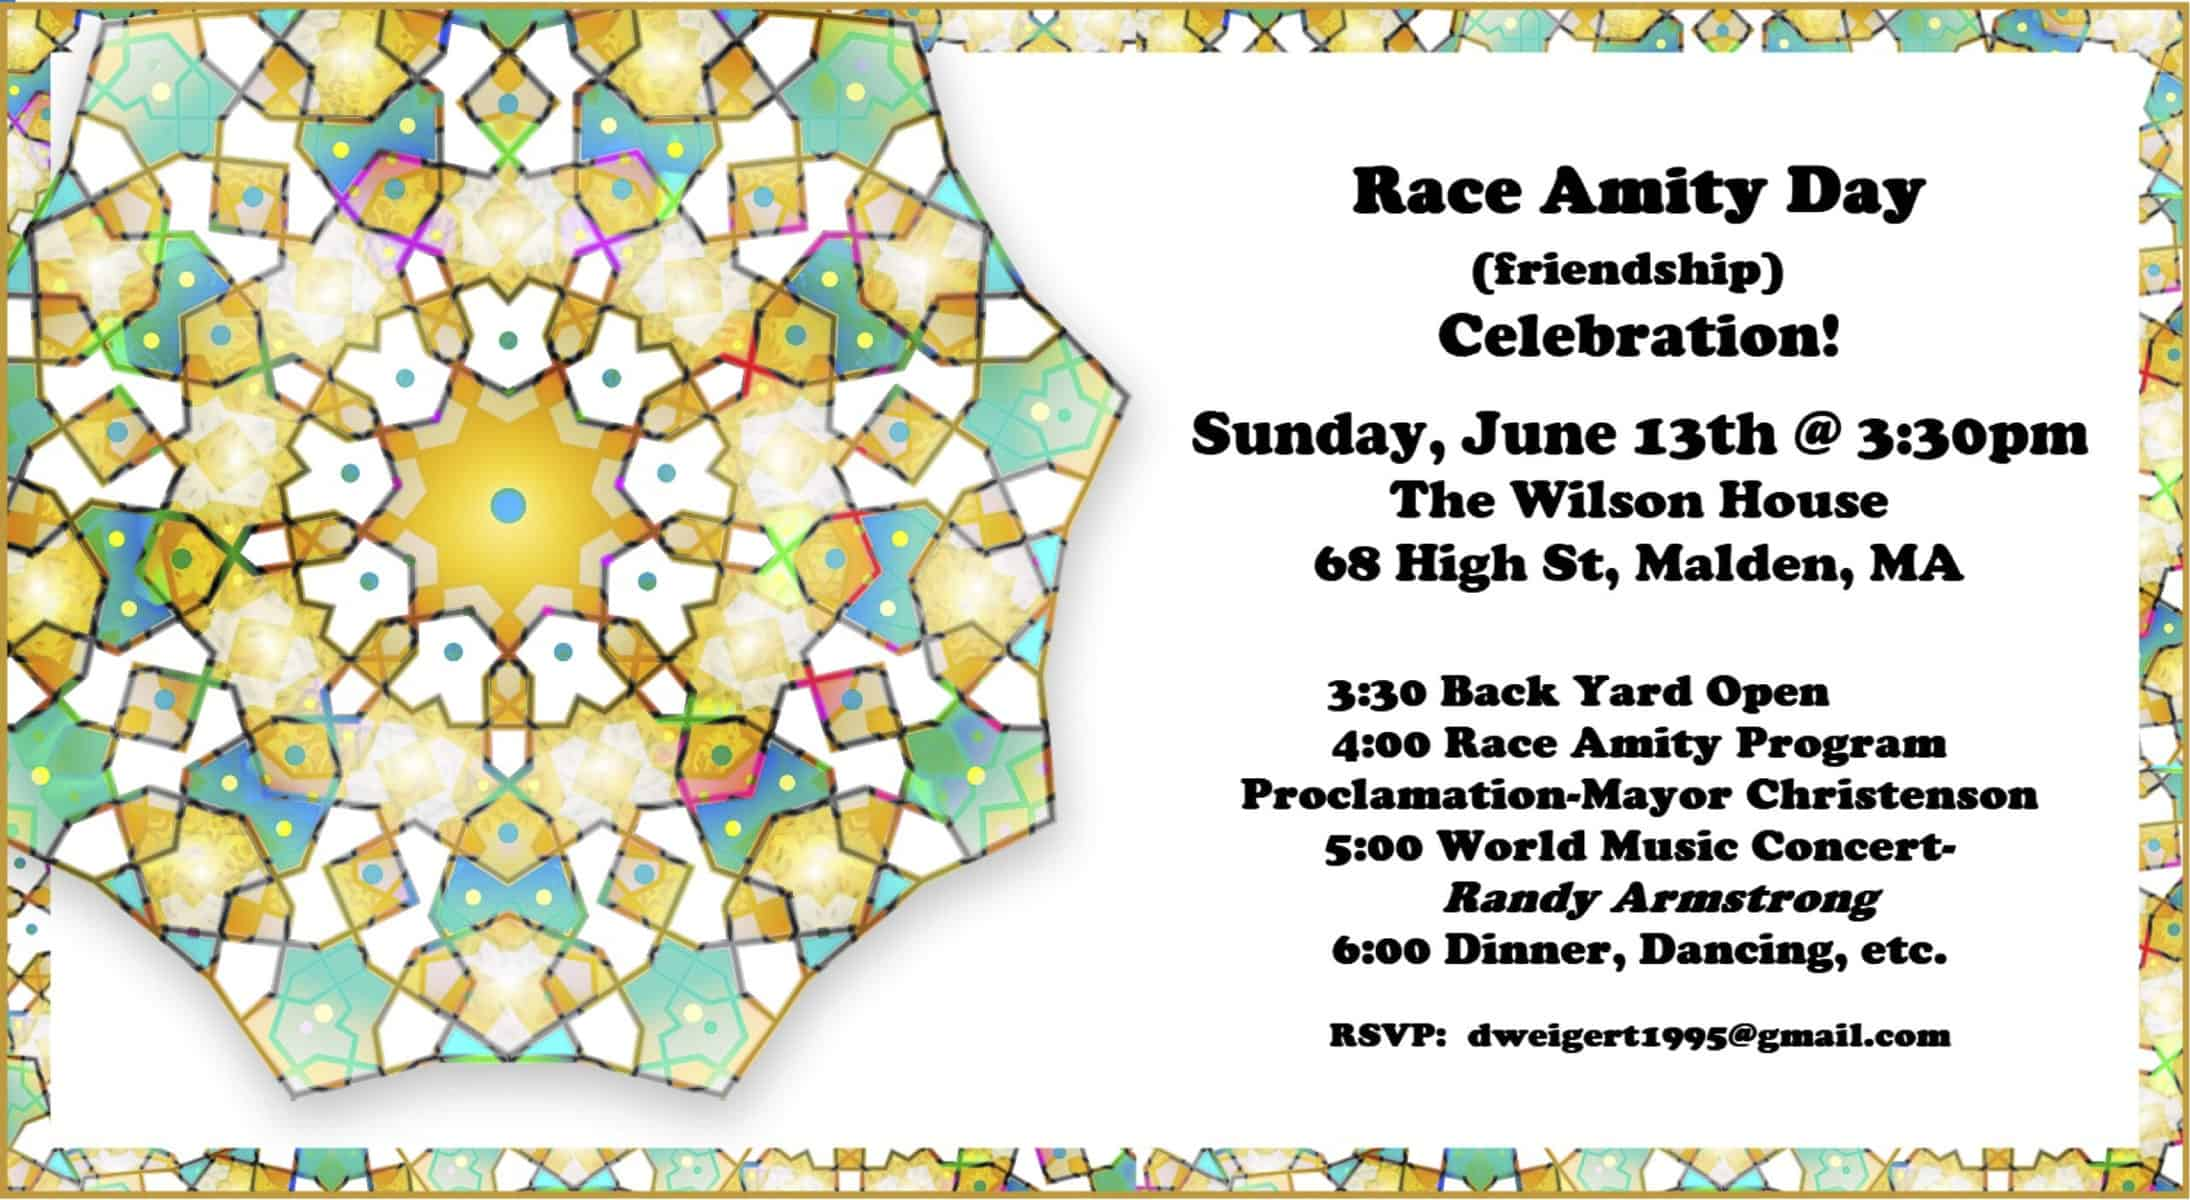 Performance at the 4th Annual Race Amity Day Celebration June 13th!